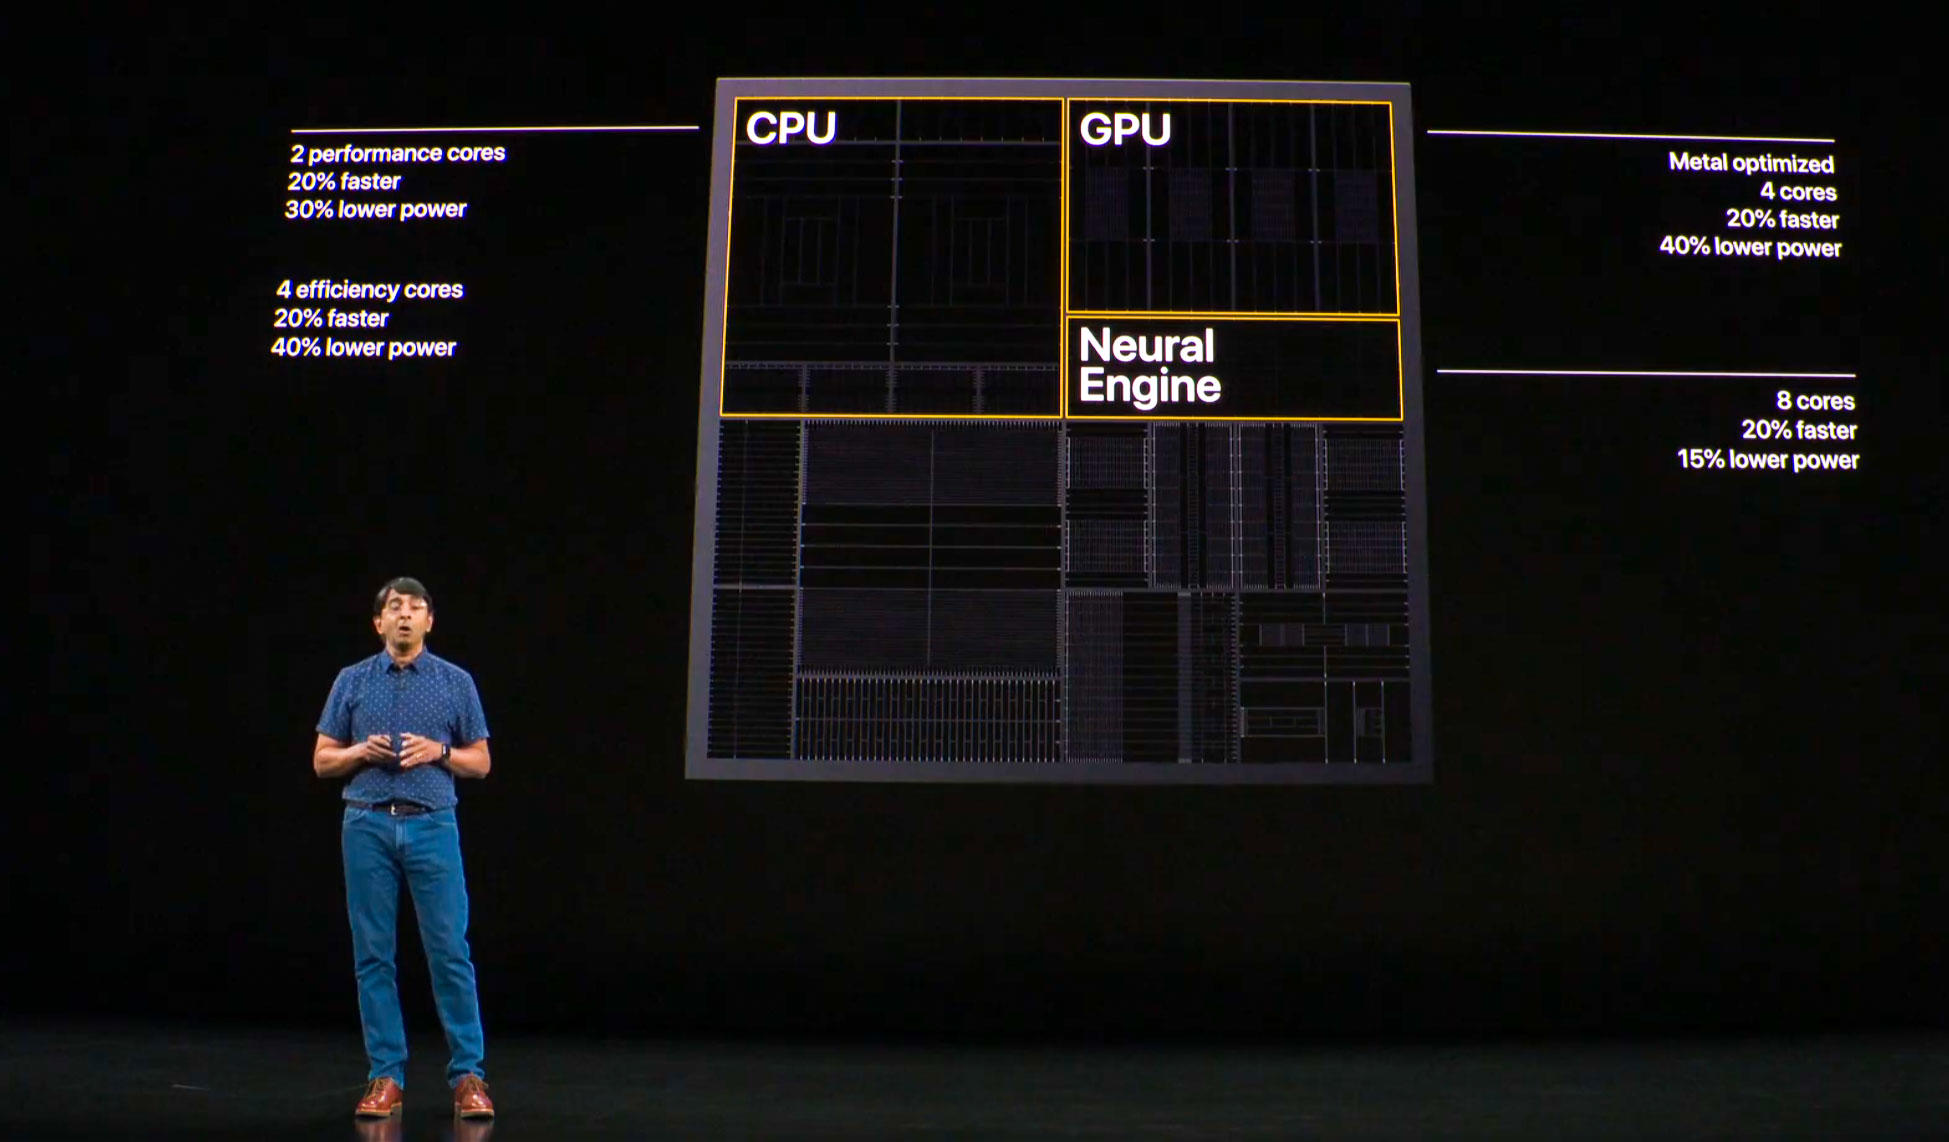 Sri Santhanam, Apple's vice president of silicon engineering, details improvements in the iPhone 11 family's A13 processor.